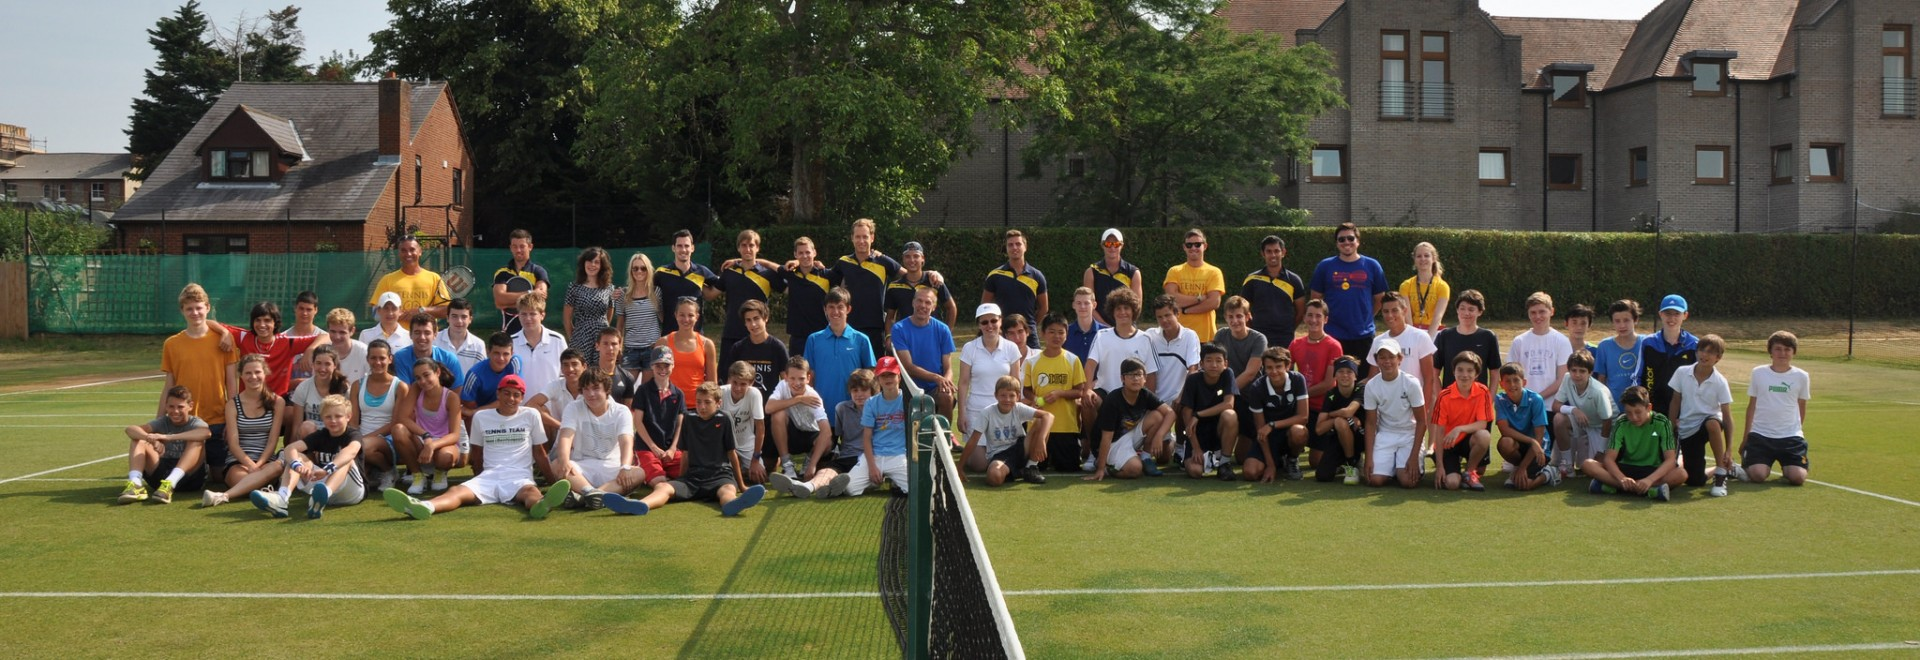 Jonathan Markson Junior Tennis Camp (and Language Classes) - University of Oxford, Oxford